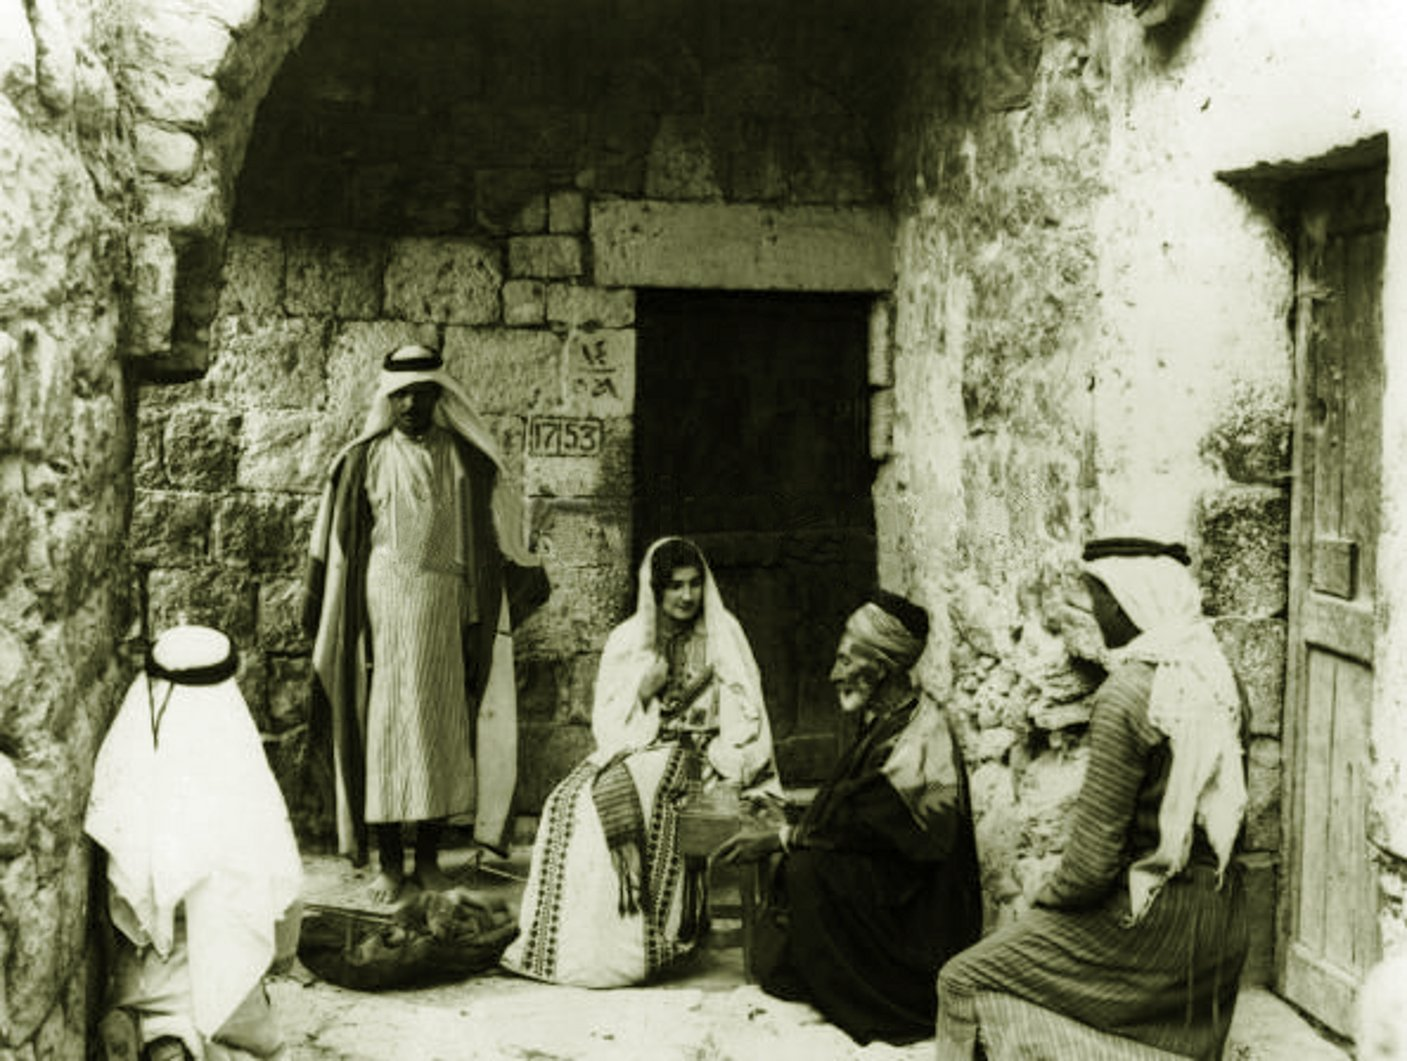 Bethlehem - بيت لحم : PALESTINE - Bethlehem, 1890s (early 20th c.) 48 circa 1925: A group of Palestinians talking outside their houses in Bethlehem. (Photo by Chalil Raad, Palestine's first Arab photographer, 1854-1957)